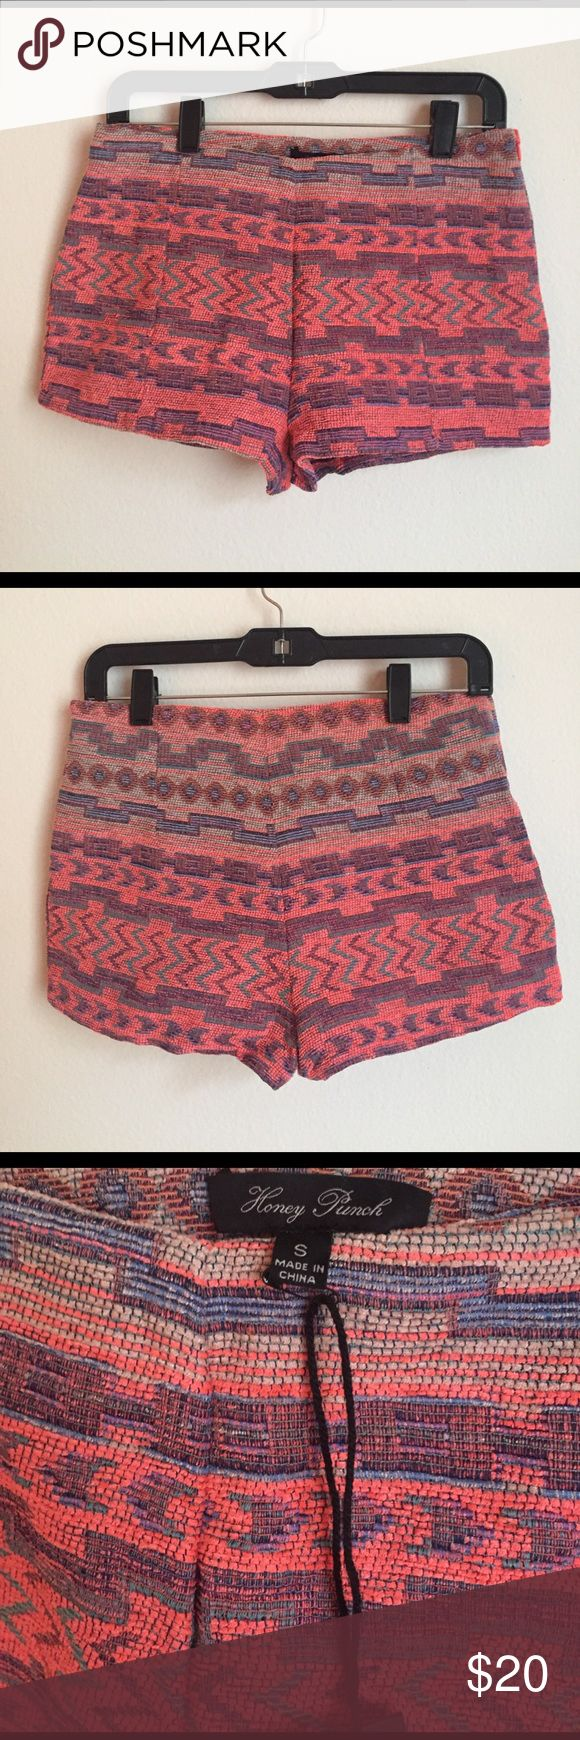 Honey Punch Aztec Print Woven Shorts Aztec print woven shorts in size small- 50% cotton, 50% polyester. NWT! Honey Punch Shorts